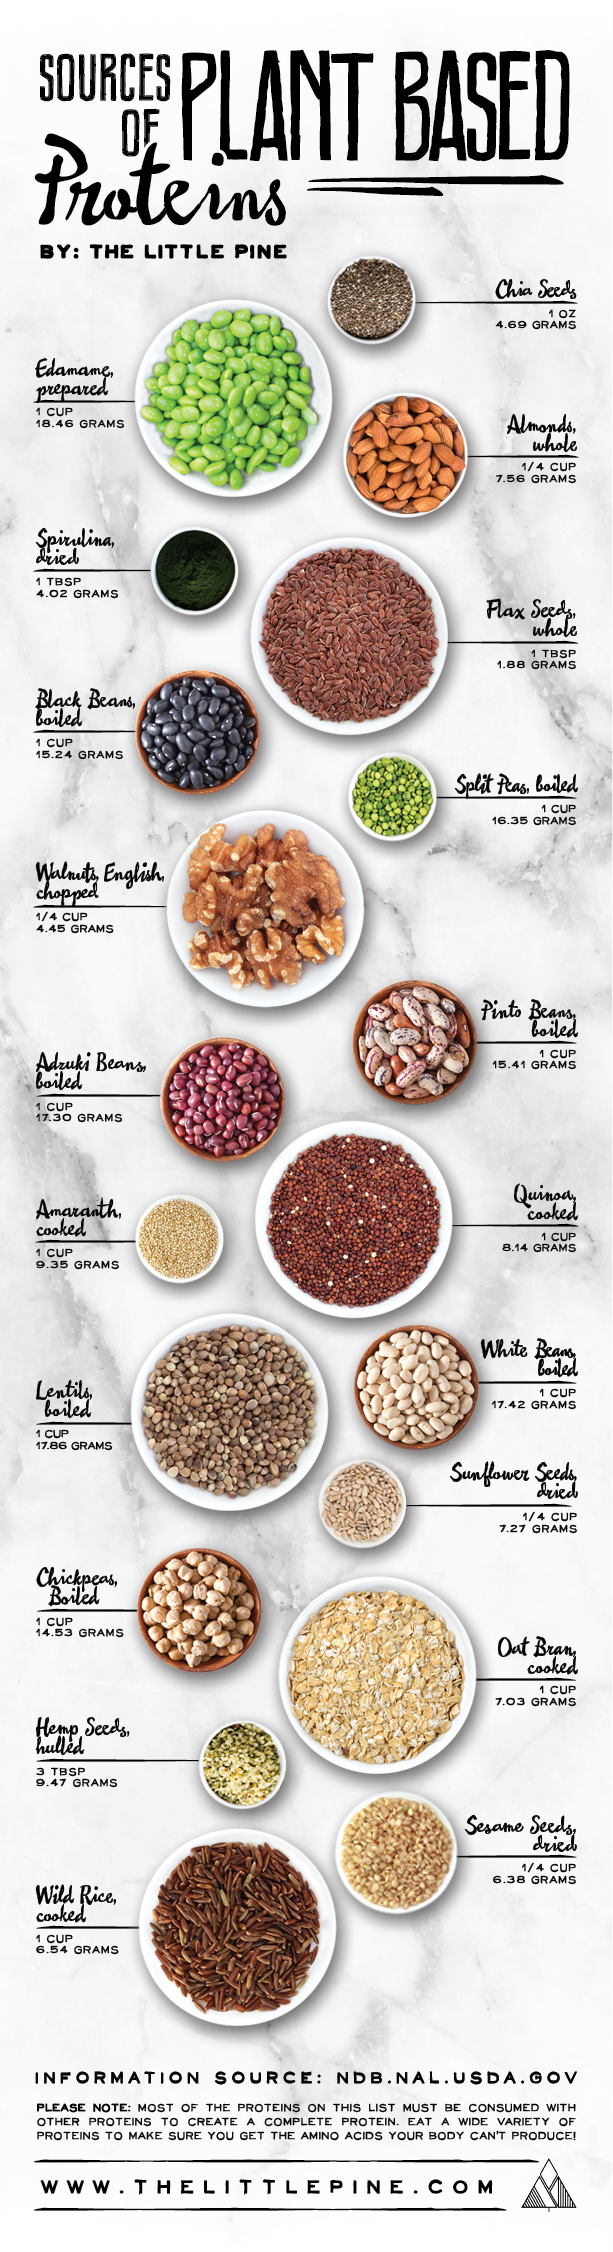 Sources of Plant Based Proteins